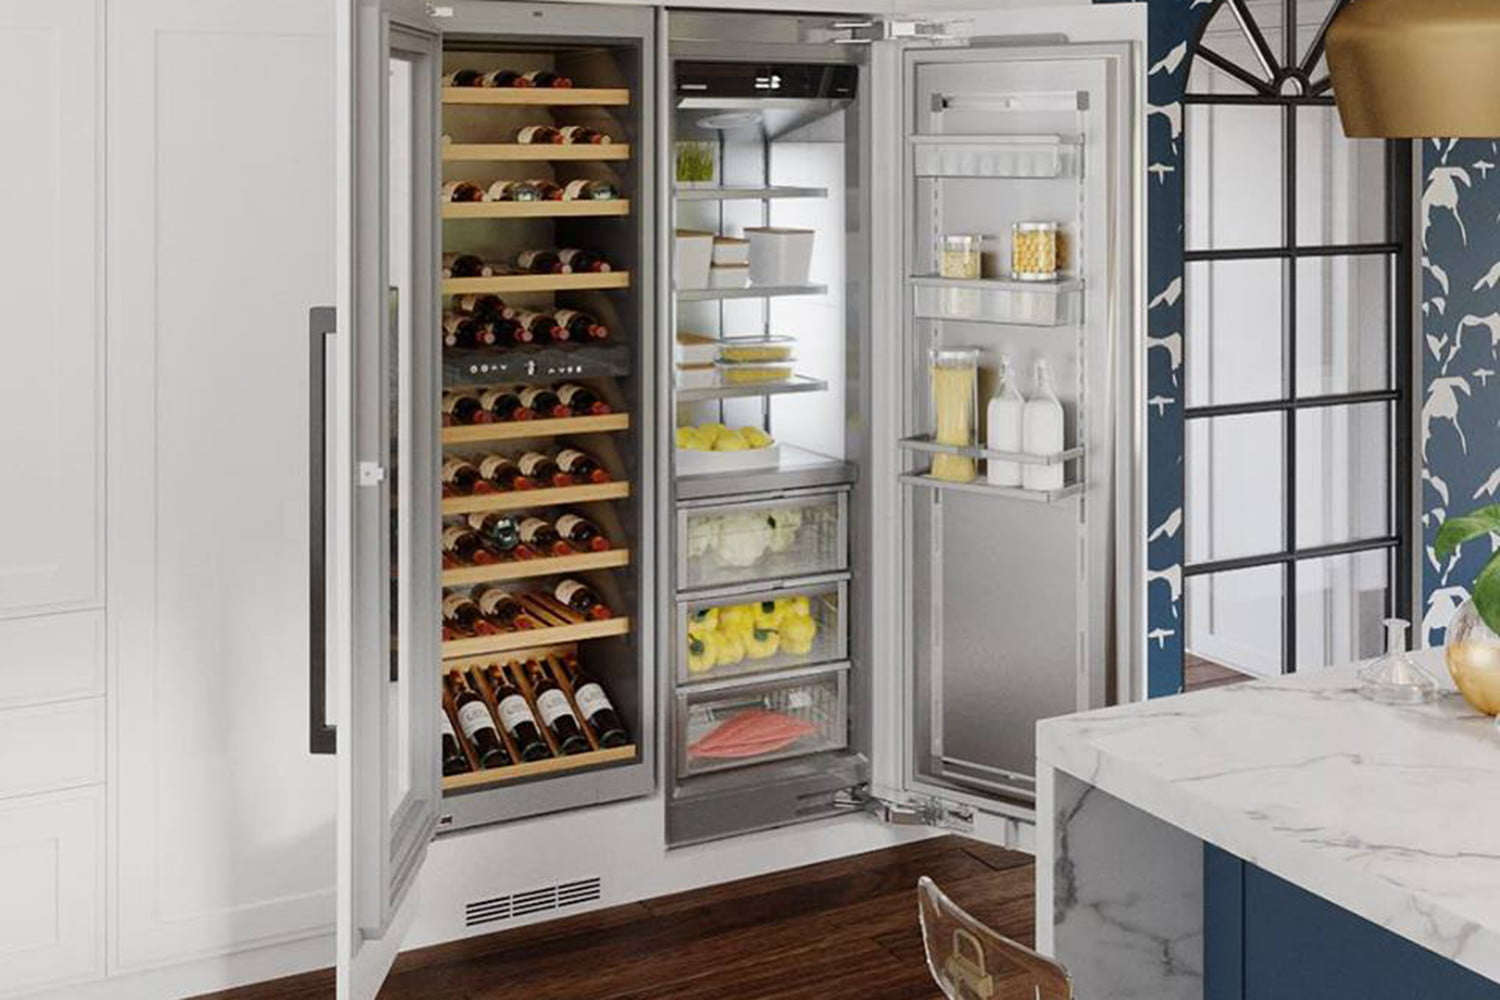 The world is switching to eco-friendlier fridges and A/Cs, leaving the U.S. behind